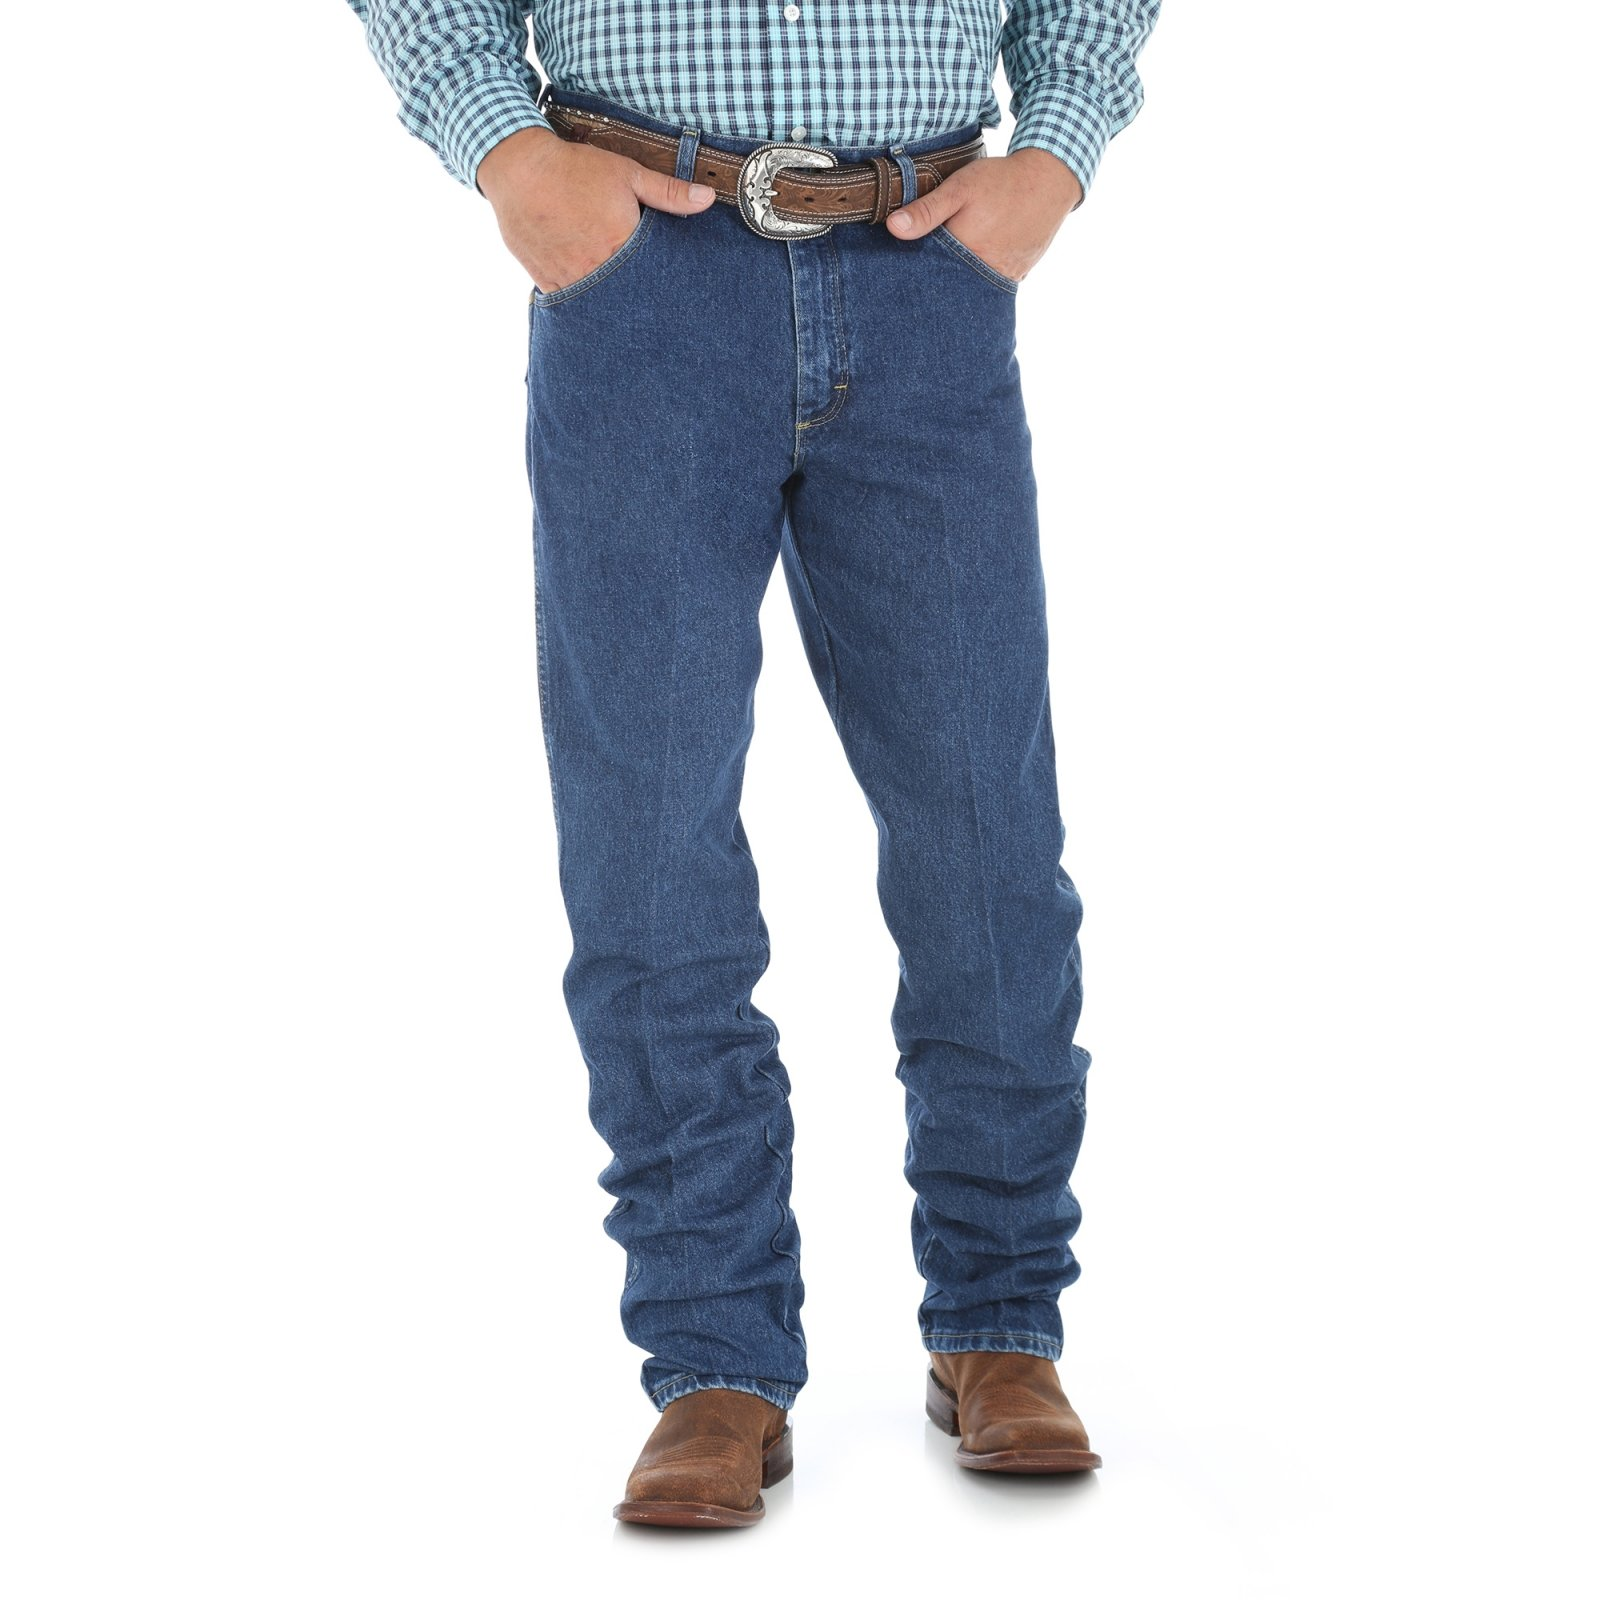 Men's George Strait Relaxed Cowboy Cut Jean from Wrangler